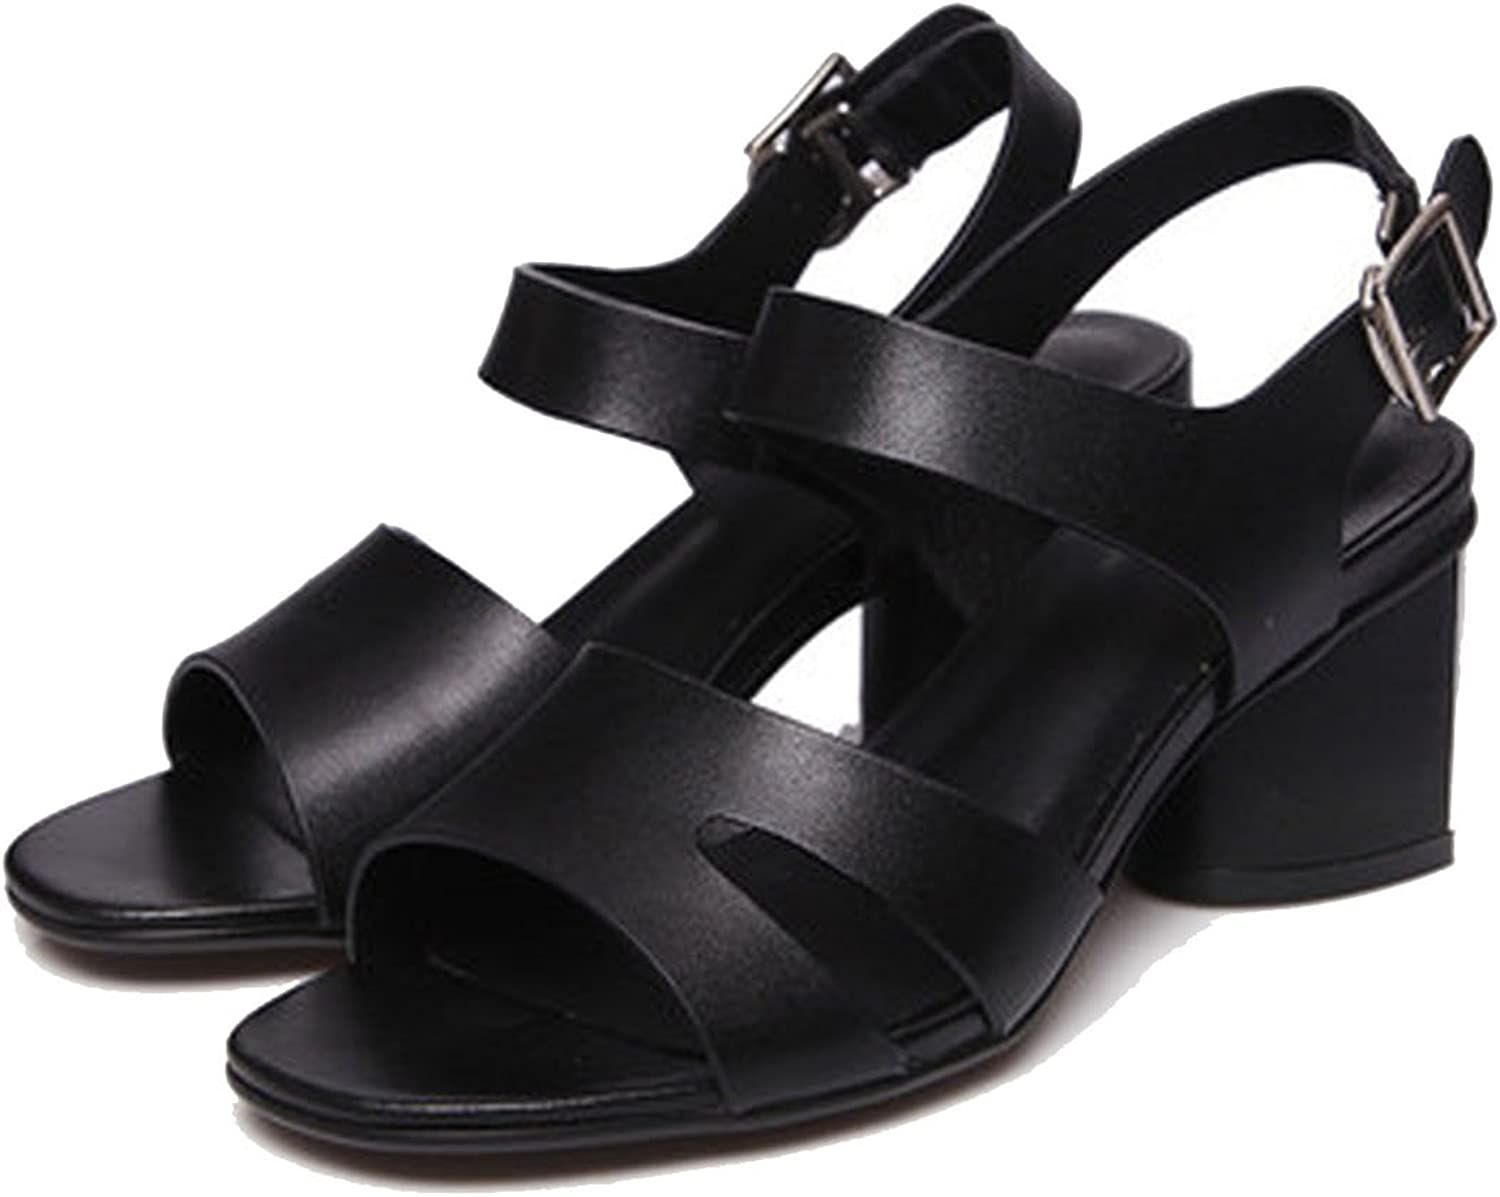 Running-sun Summer Genuine Leather Women Sandals Thick Heel with Pearl Comfortable Women Sandals Black White